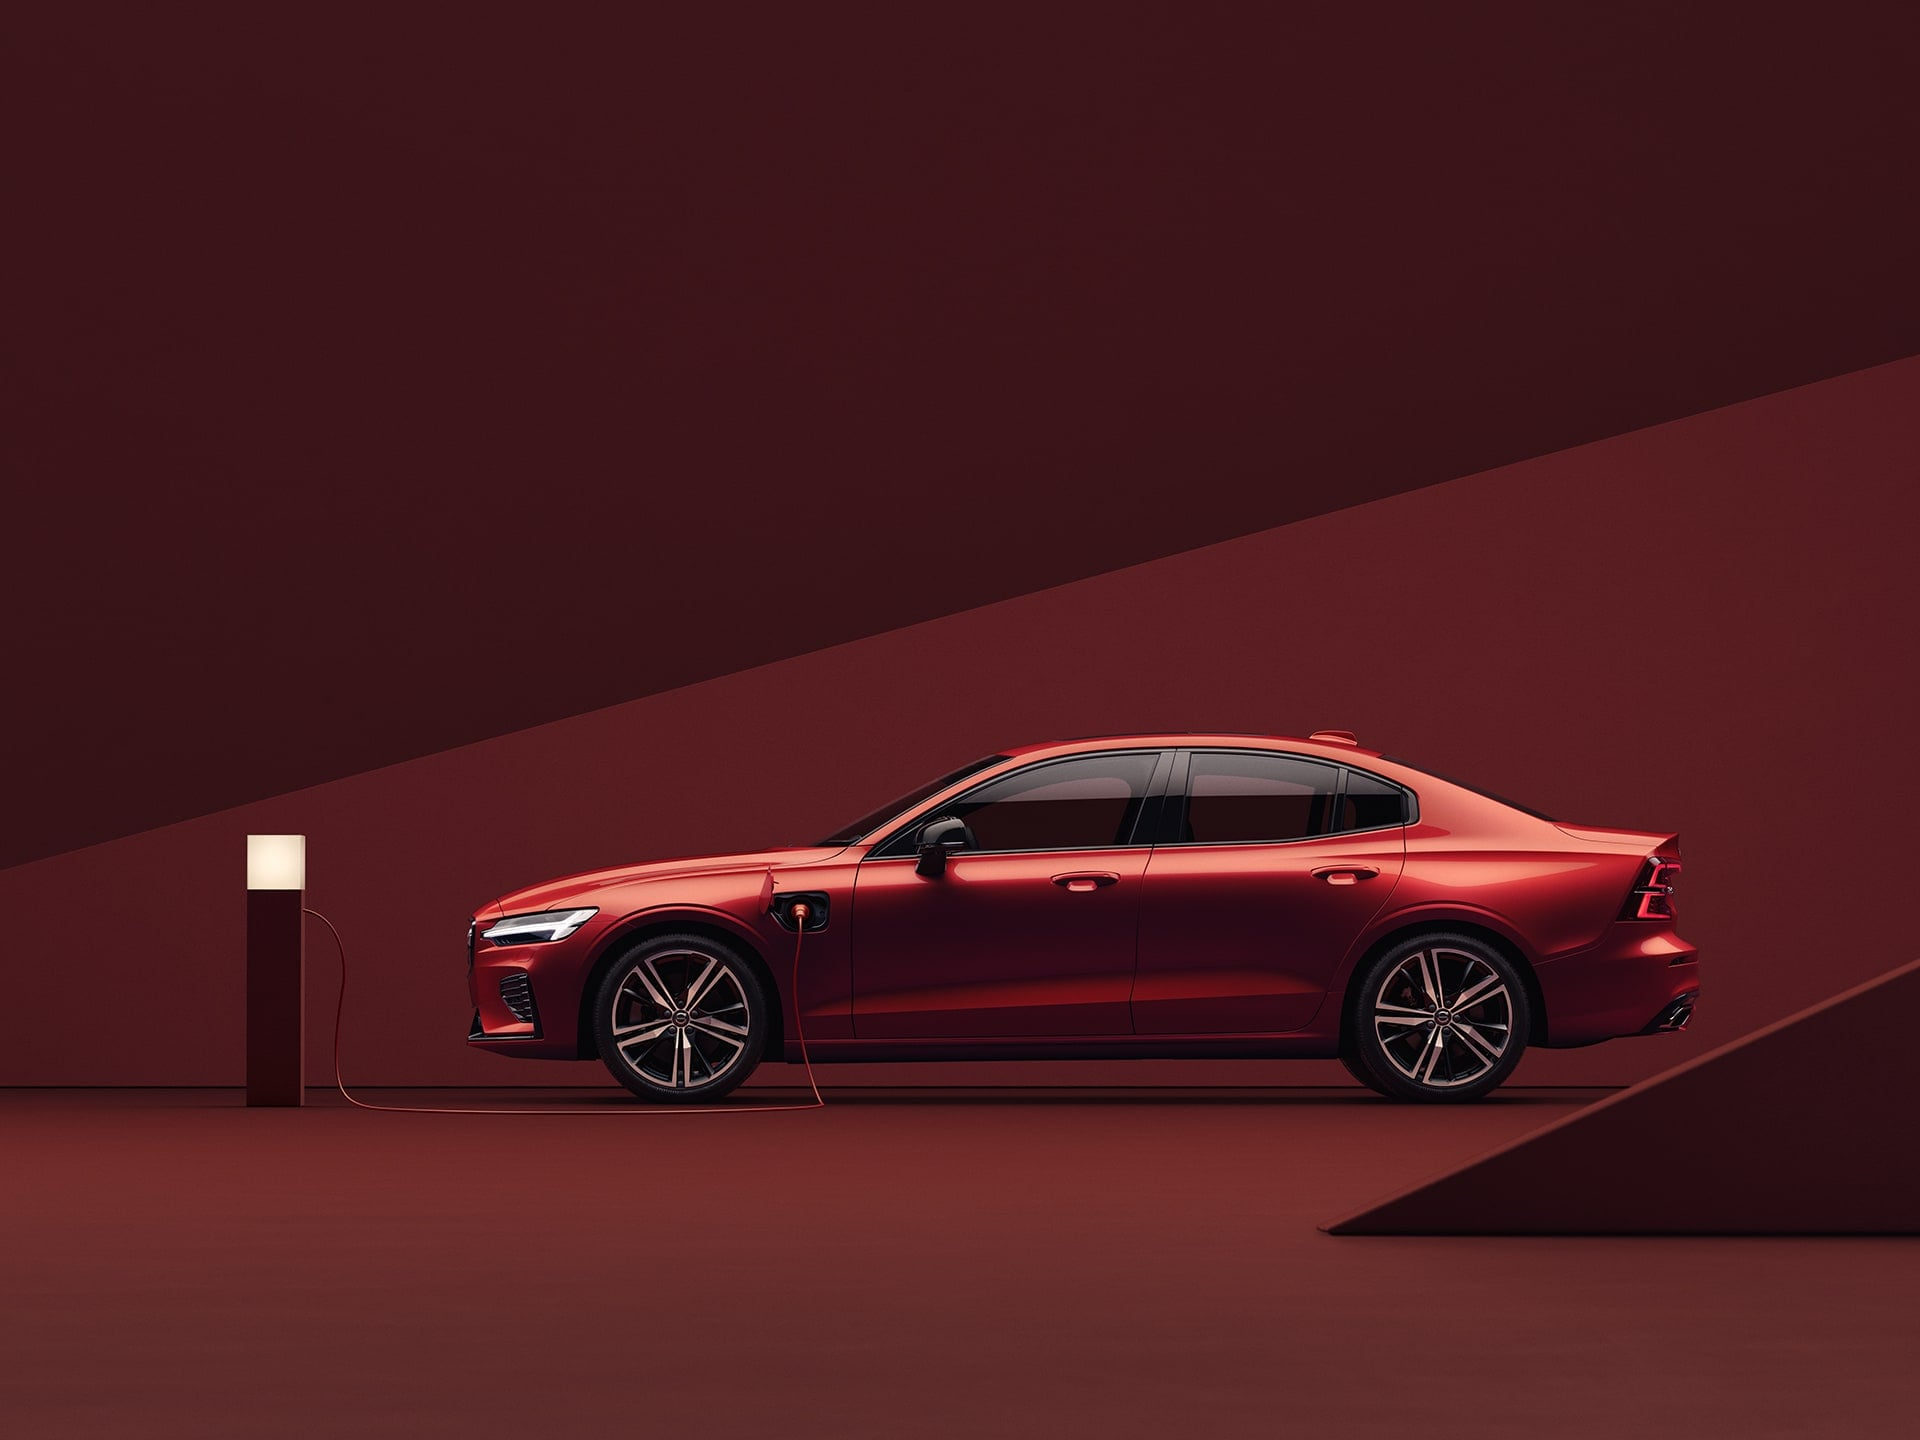 The front exterior of a red Volvo S60 Recharge Plug-in hybrid sedan in a red surrounding.